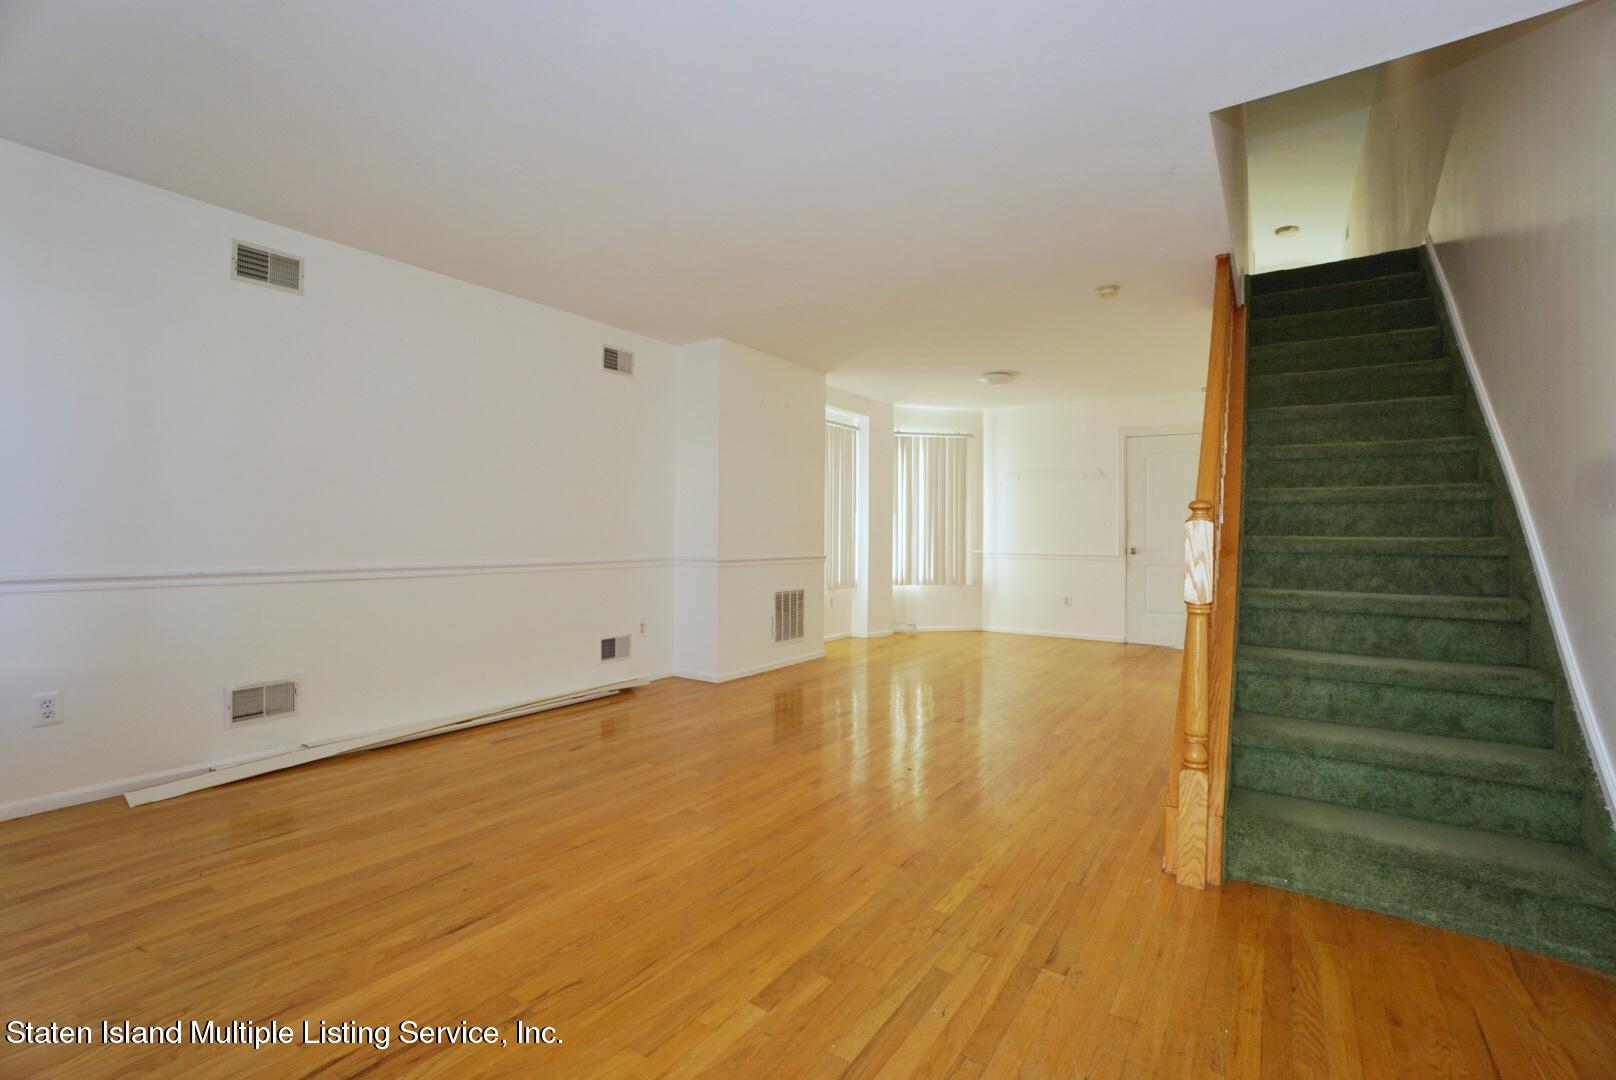 Two Family - Semi-Attached 73 Seguine Loop  Staten Island, NY 10309, MLS-1142582-13